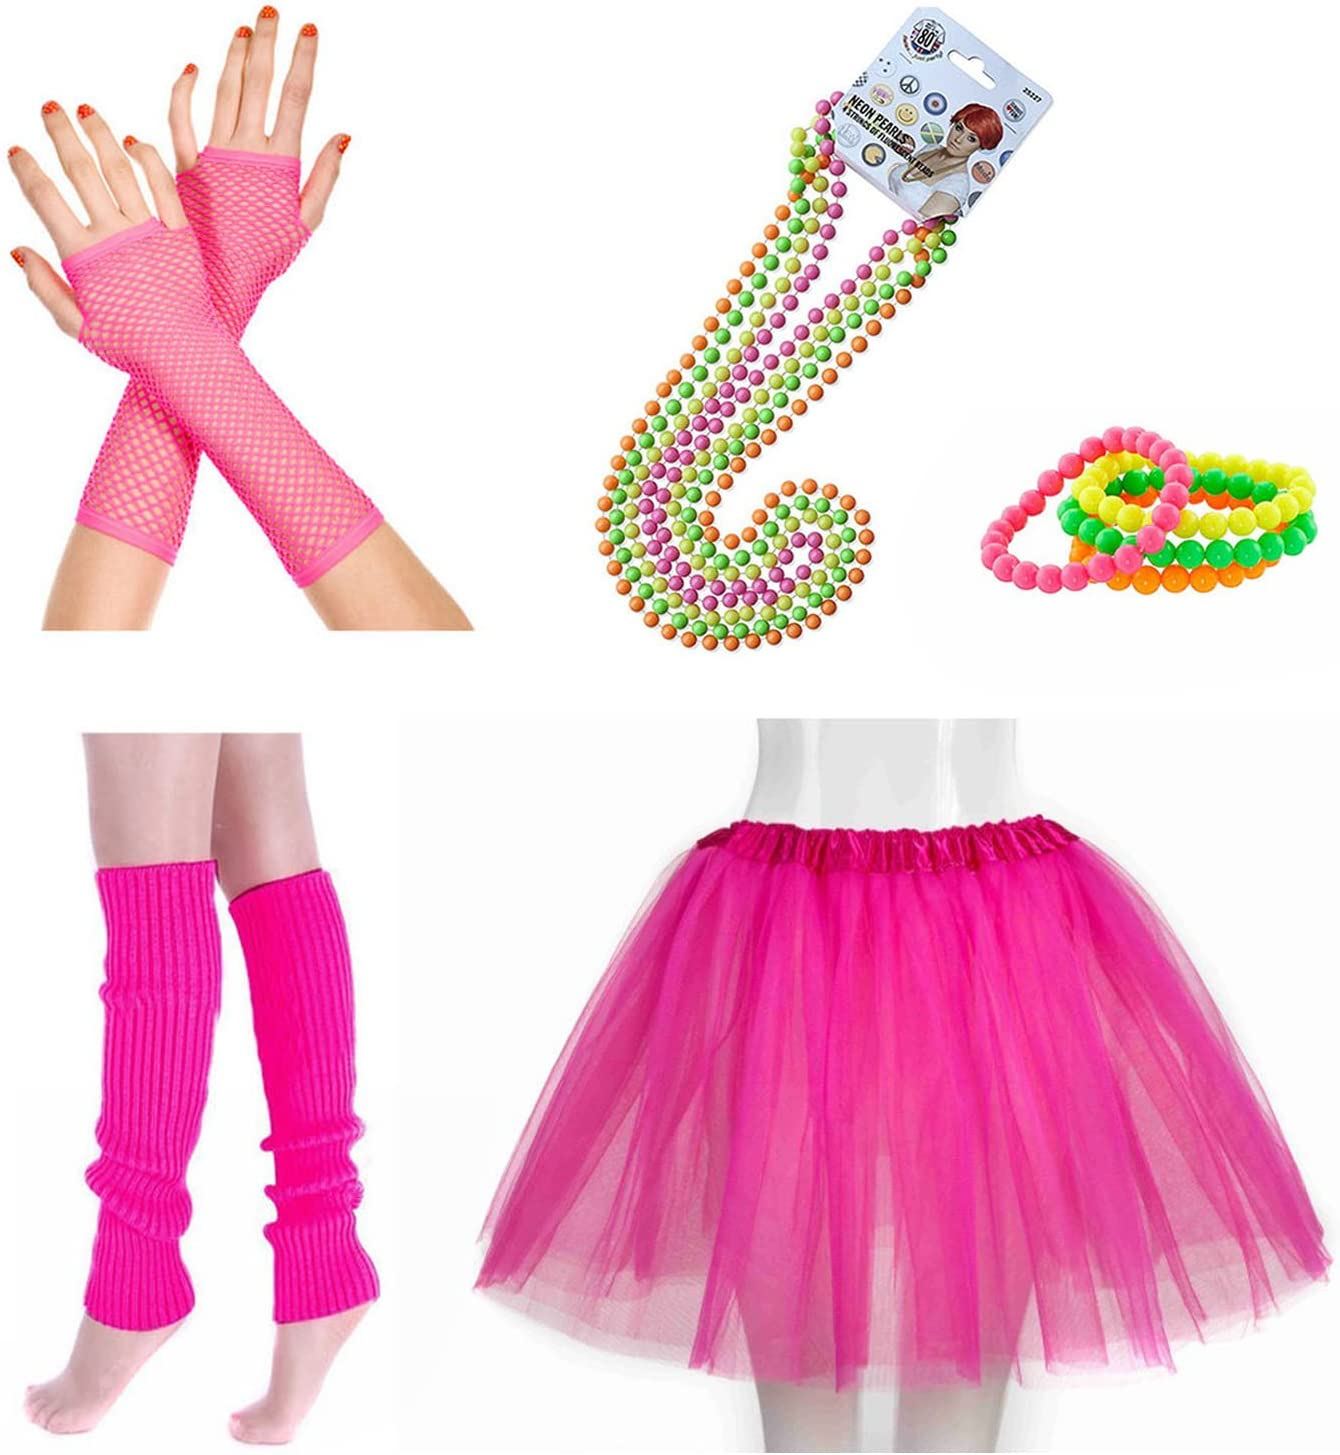 ADULT 80s FANCY DRESS HEN PARTY COSTUME SET TUTU SKIRT LEG WARMER FISHNET GLOVES